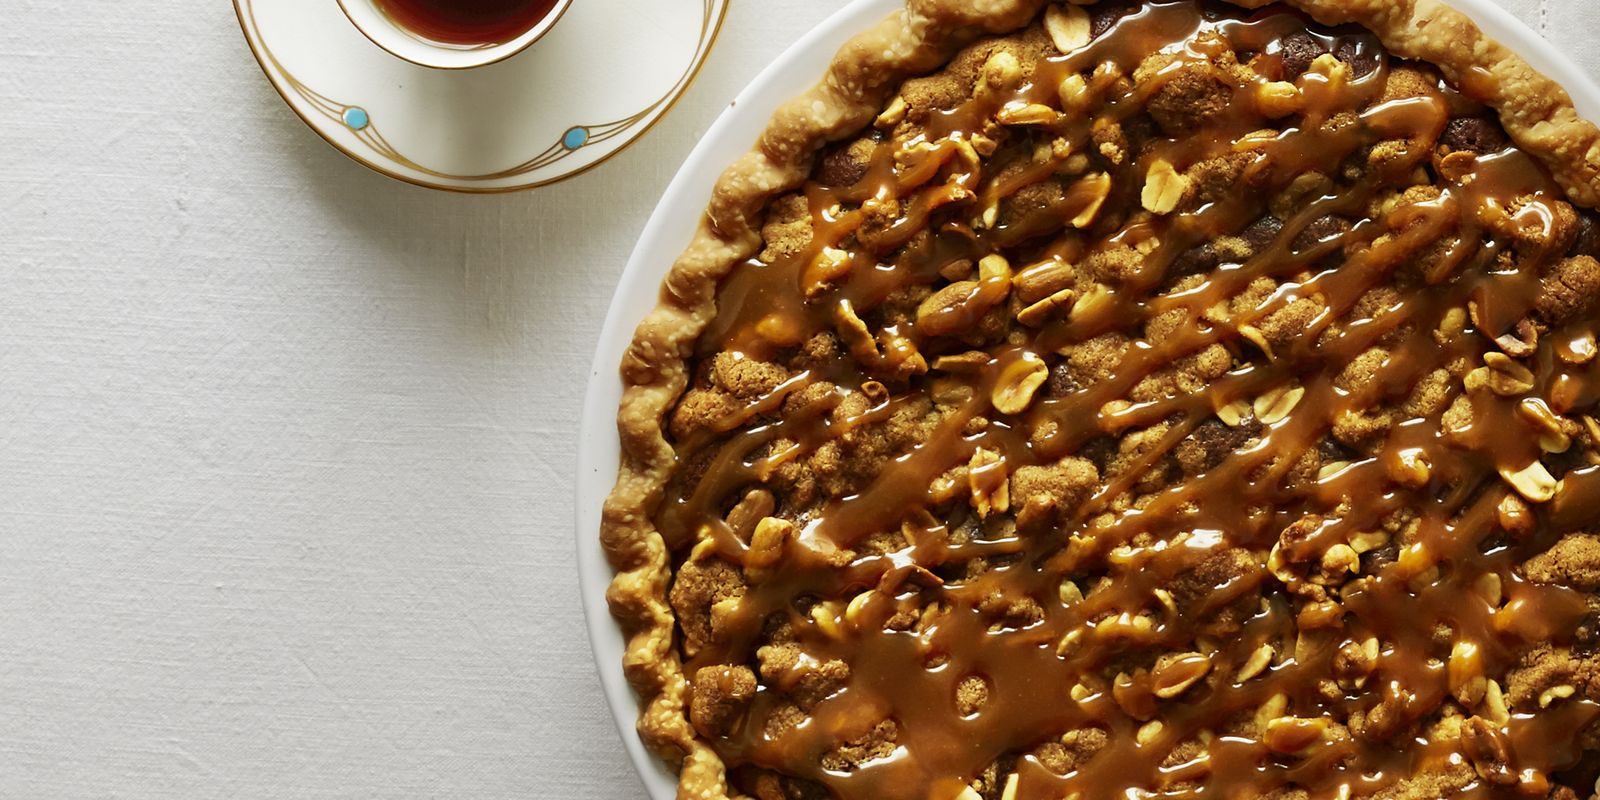 Salted Caramel Peanut Butter Fudge Pie Recipe